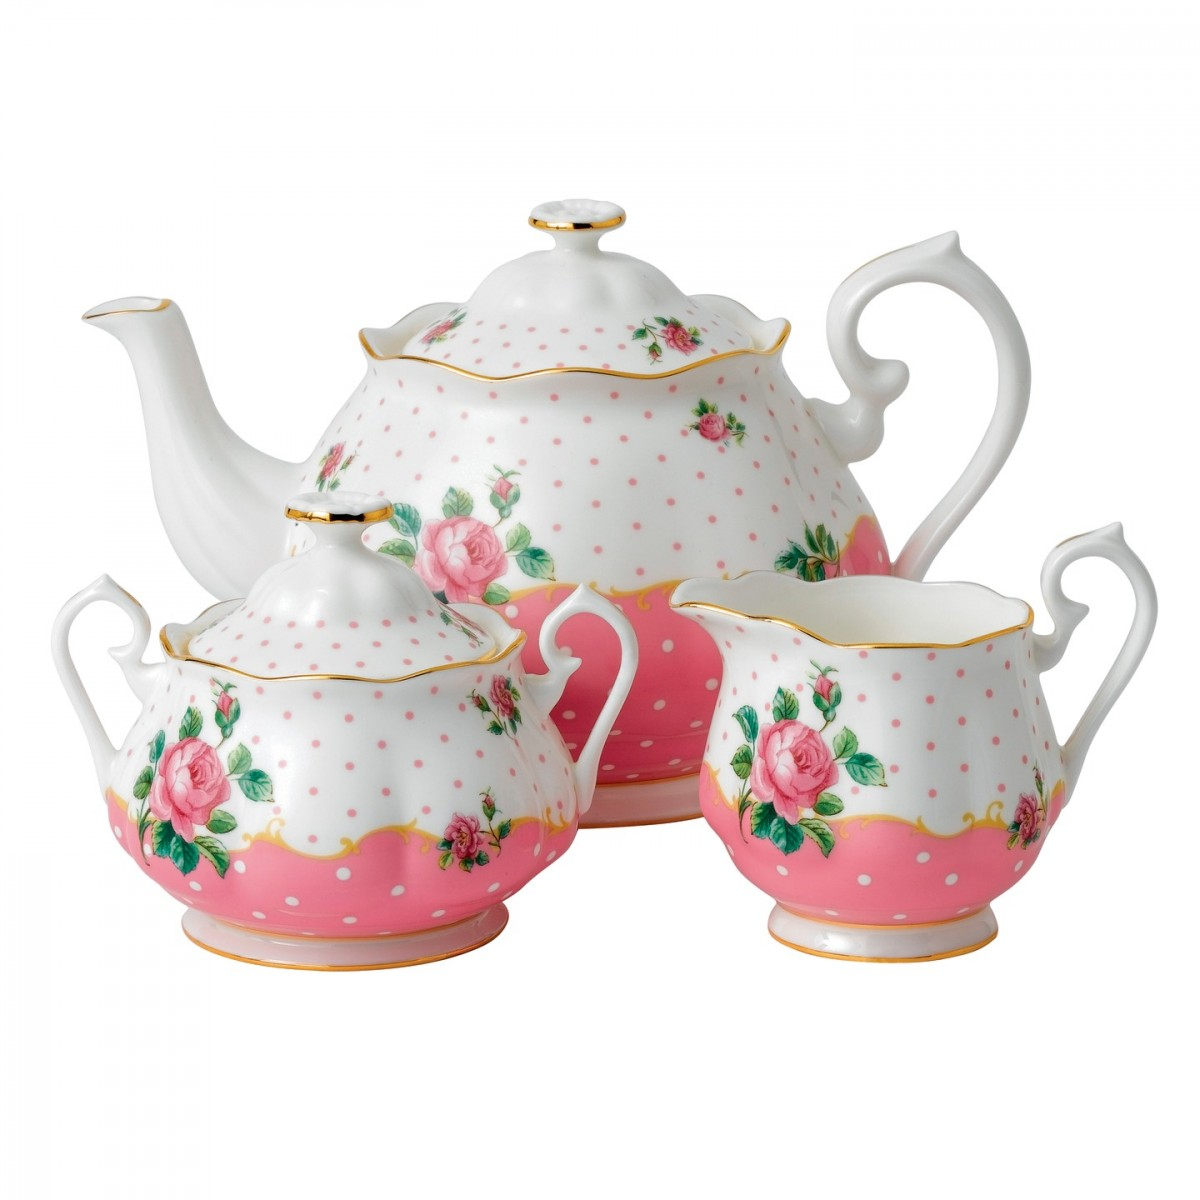 Royal Albert China New Country Roses Cheeky Pink Tea Party 3-Piece Set